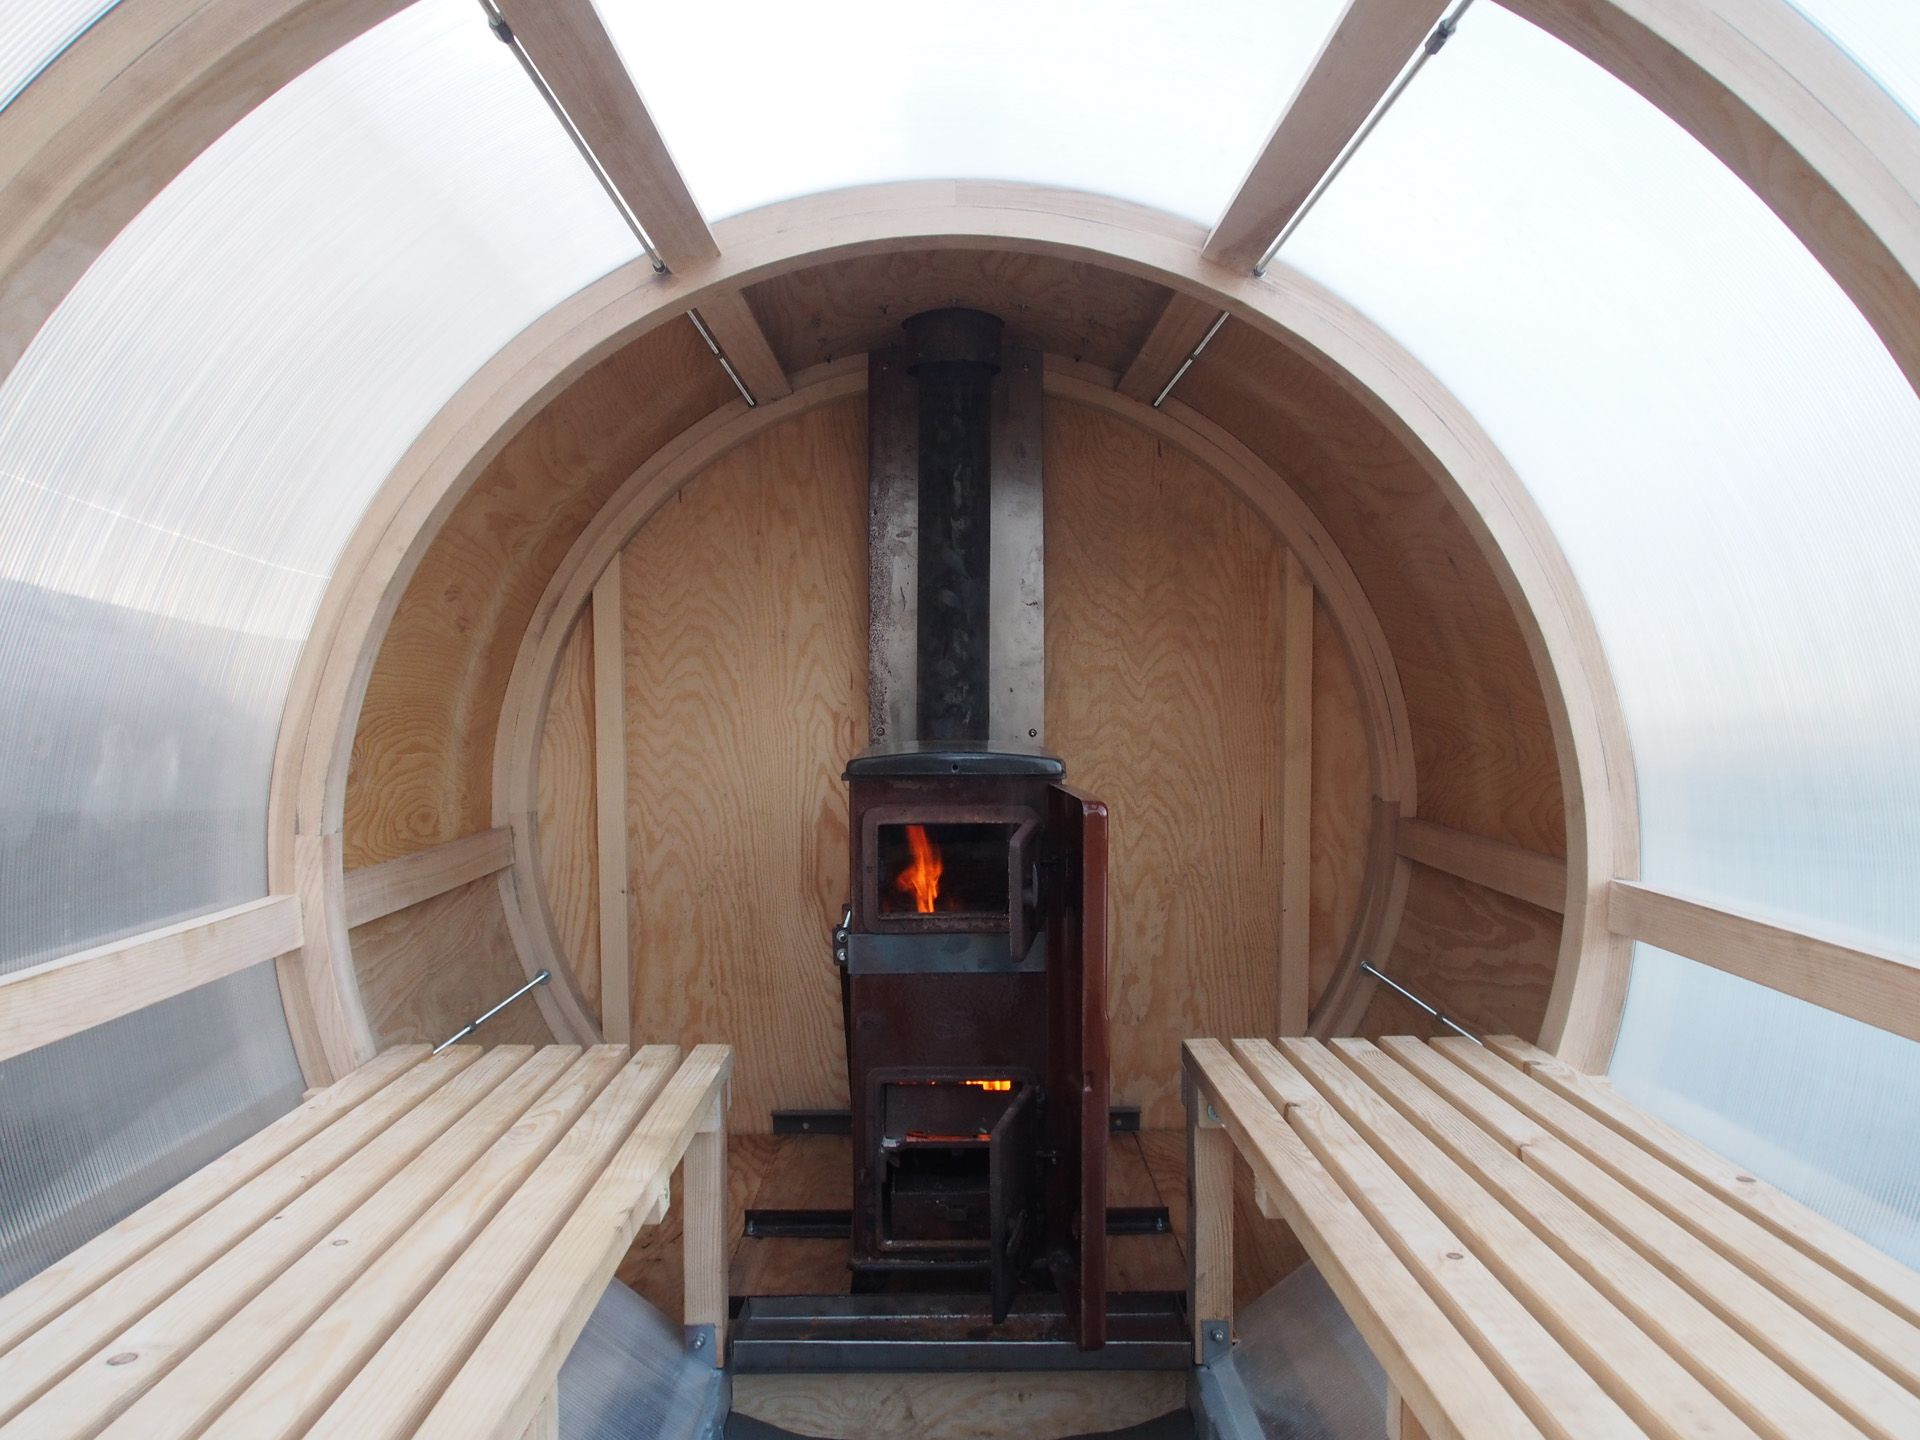 Interior view form our mobile sauna mobile sauna mobile sauna sauna design interior Interior design business forms